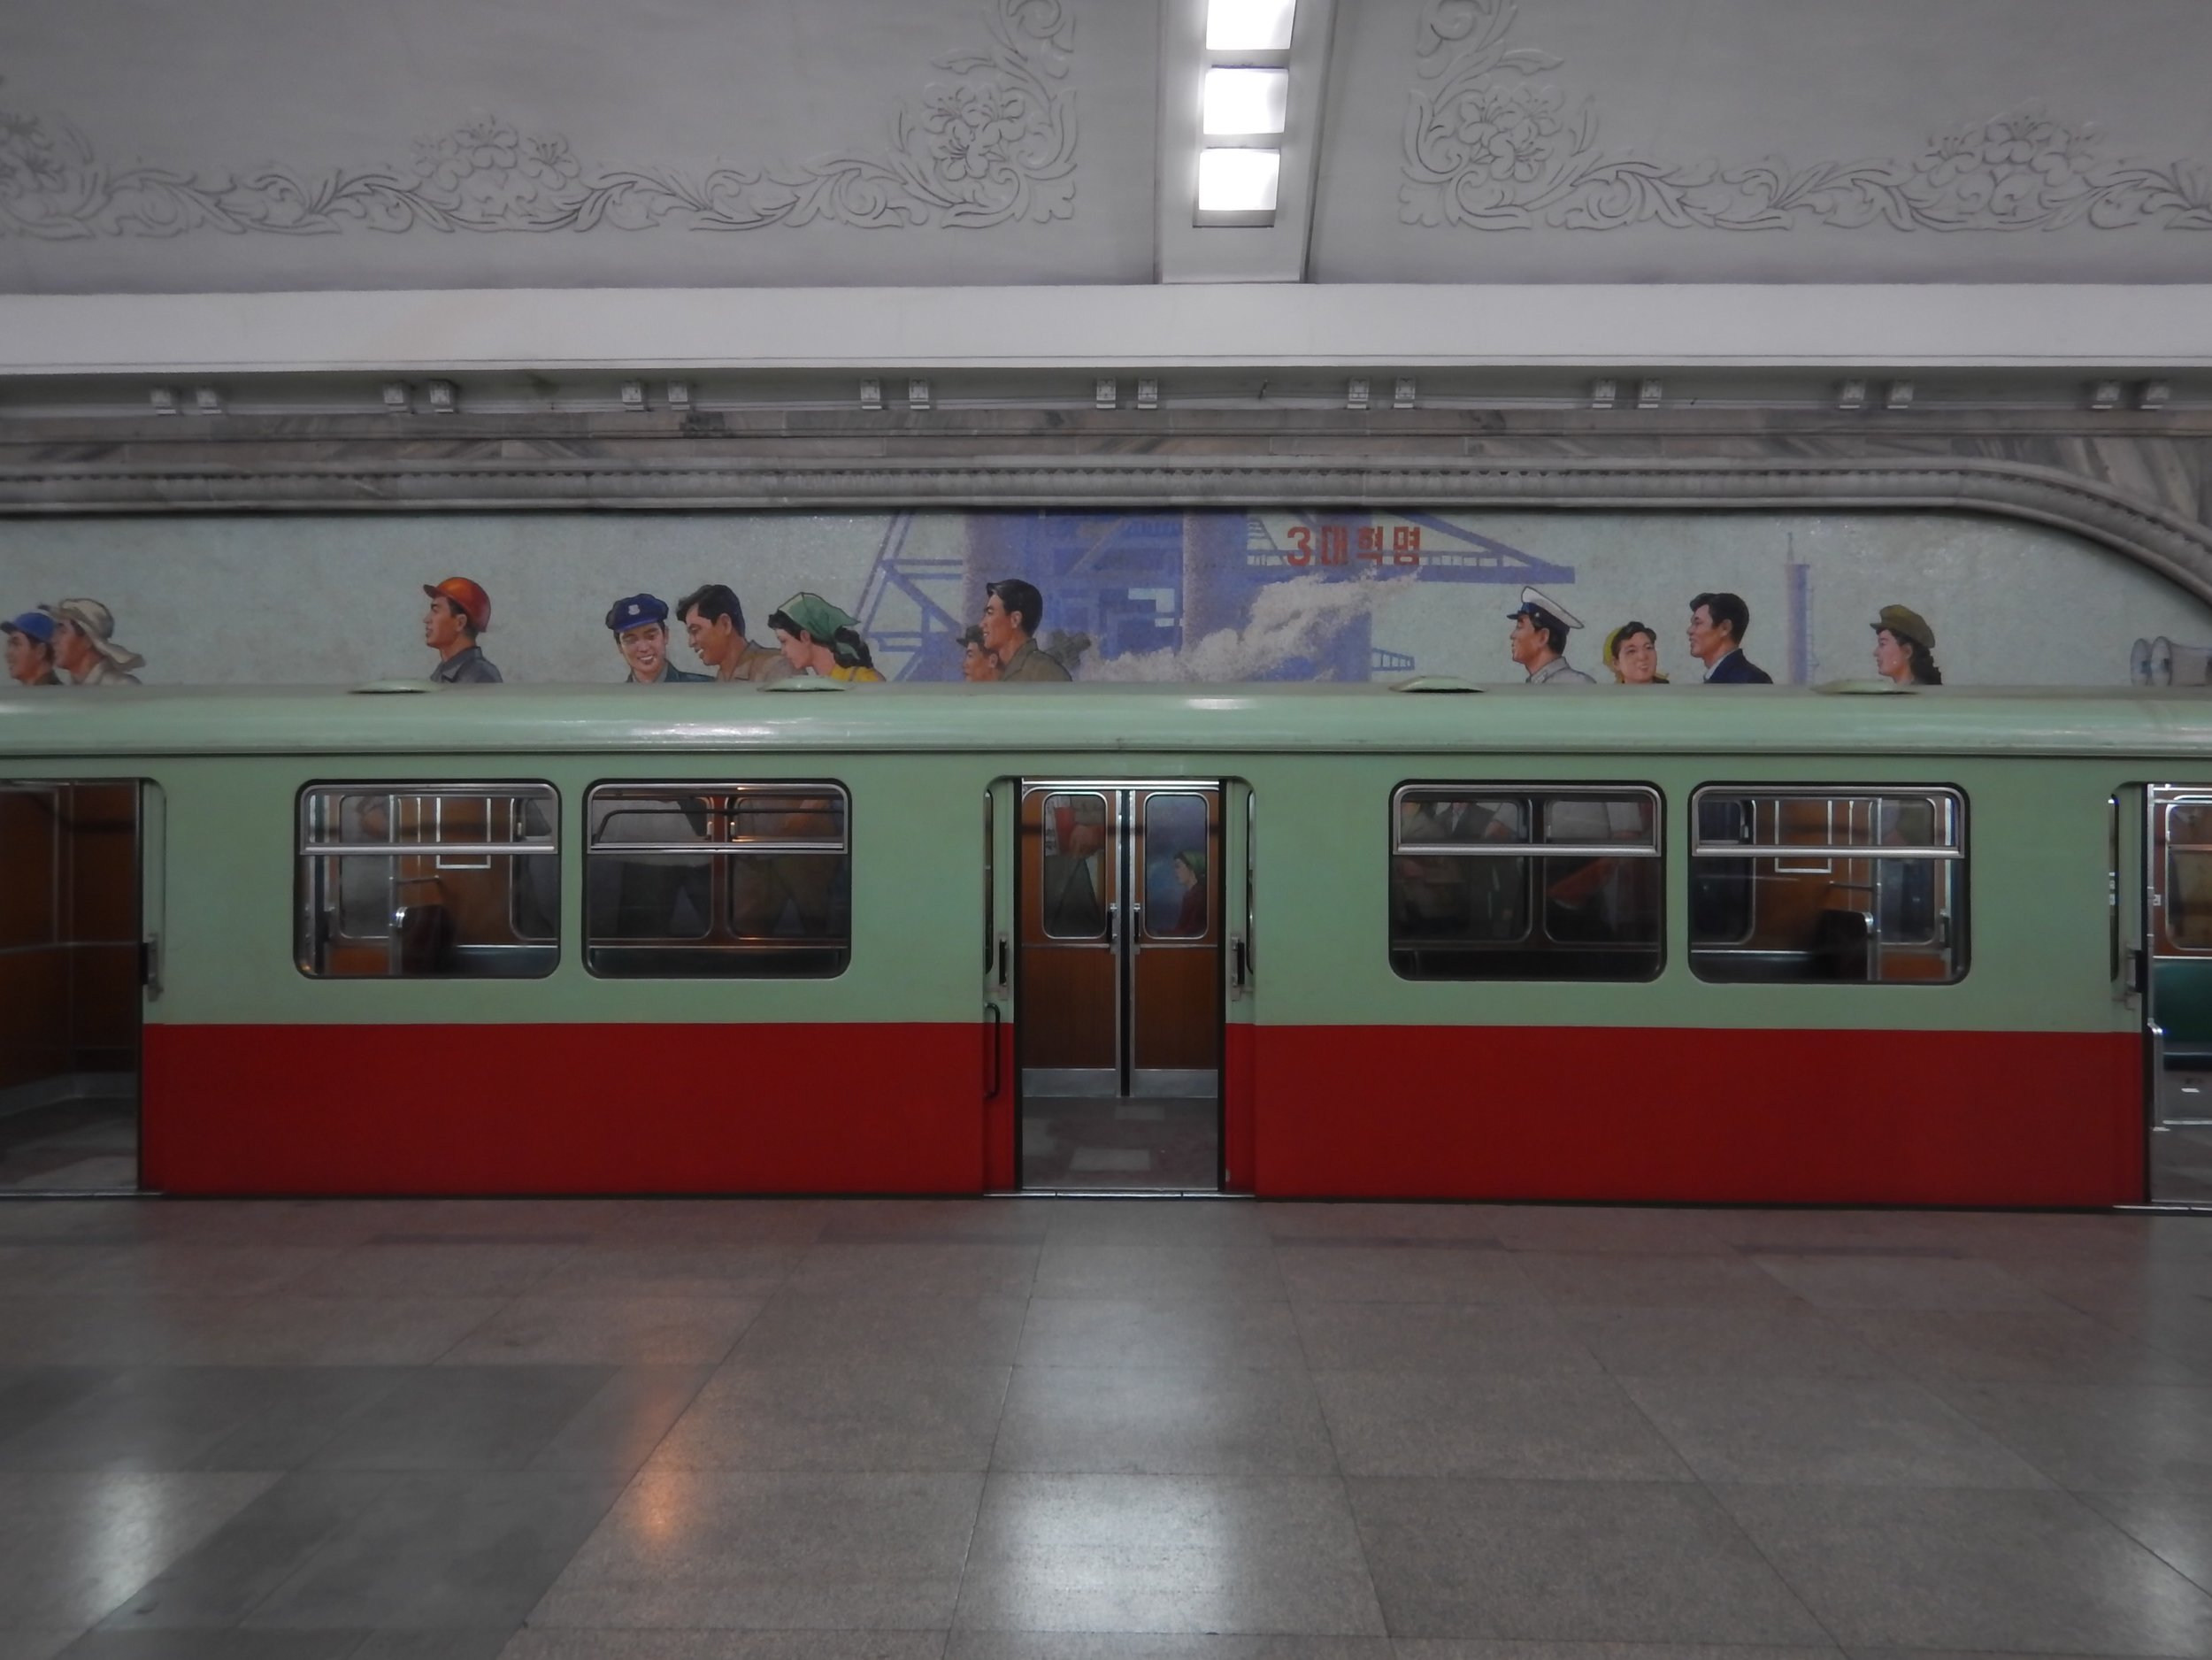 An empty subway car parked in thr Pyongyang Metro's Puhung Station, found in the southern part of the city. Visible behind the car is a tile mosaic depicting the life of average North Korean workers. (Photo by Ethan Jakob Craft.)